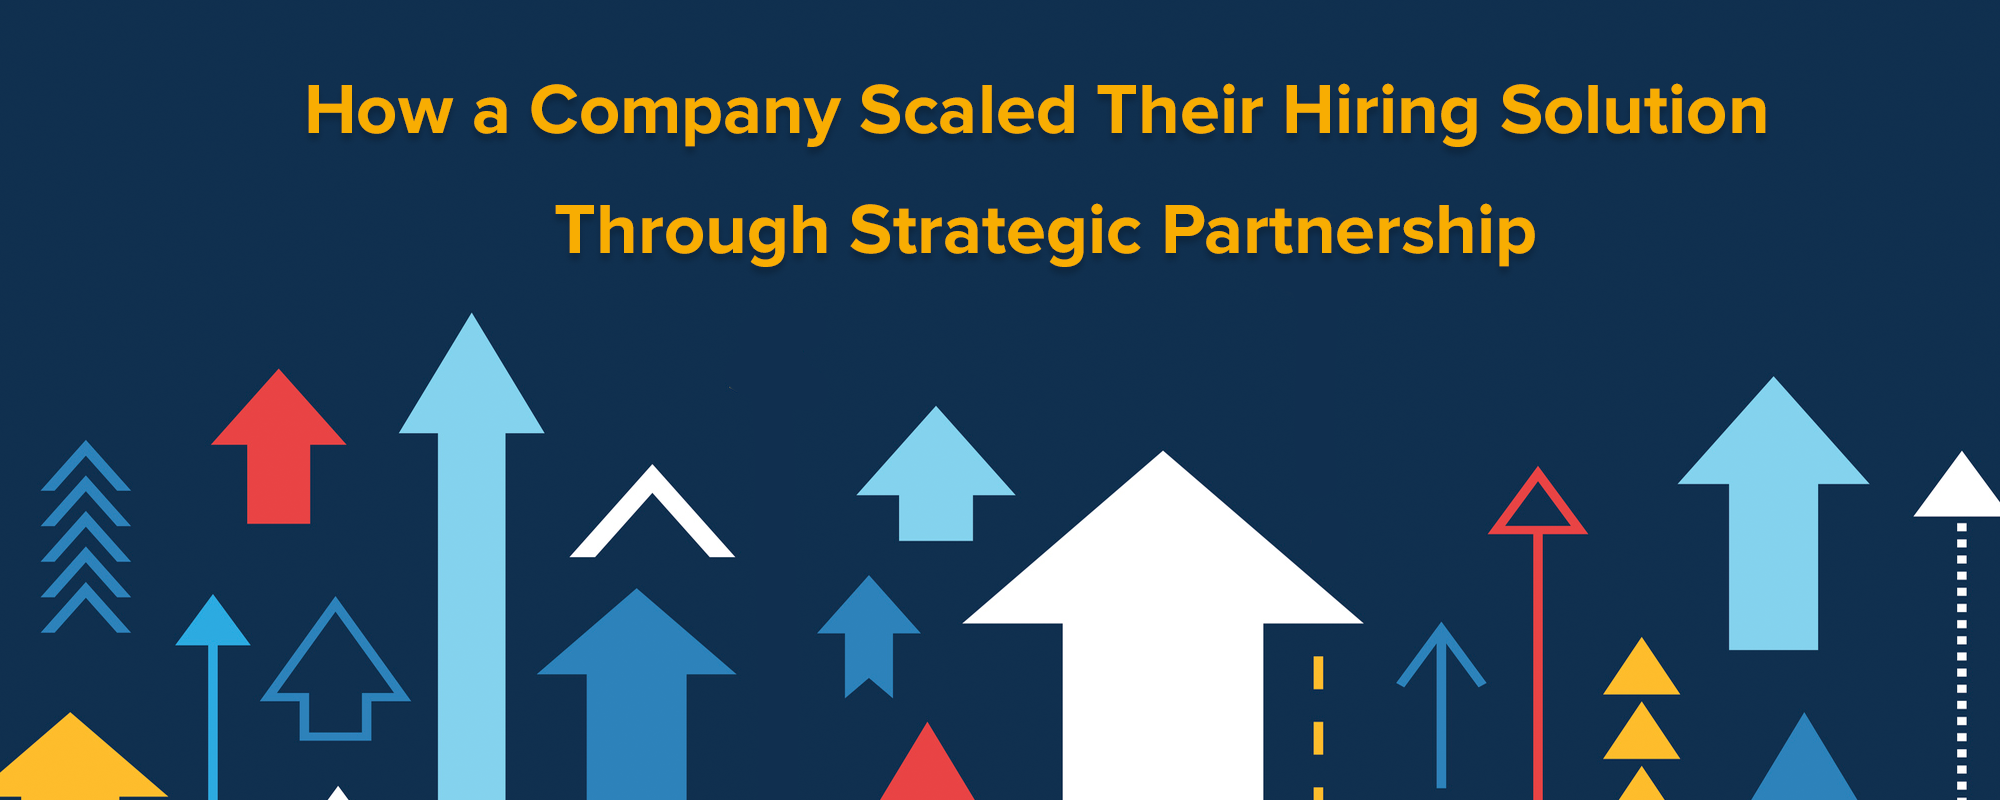 case study: how a company scaled their hiring solution through strategic partnership